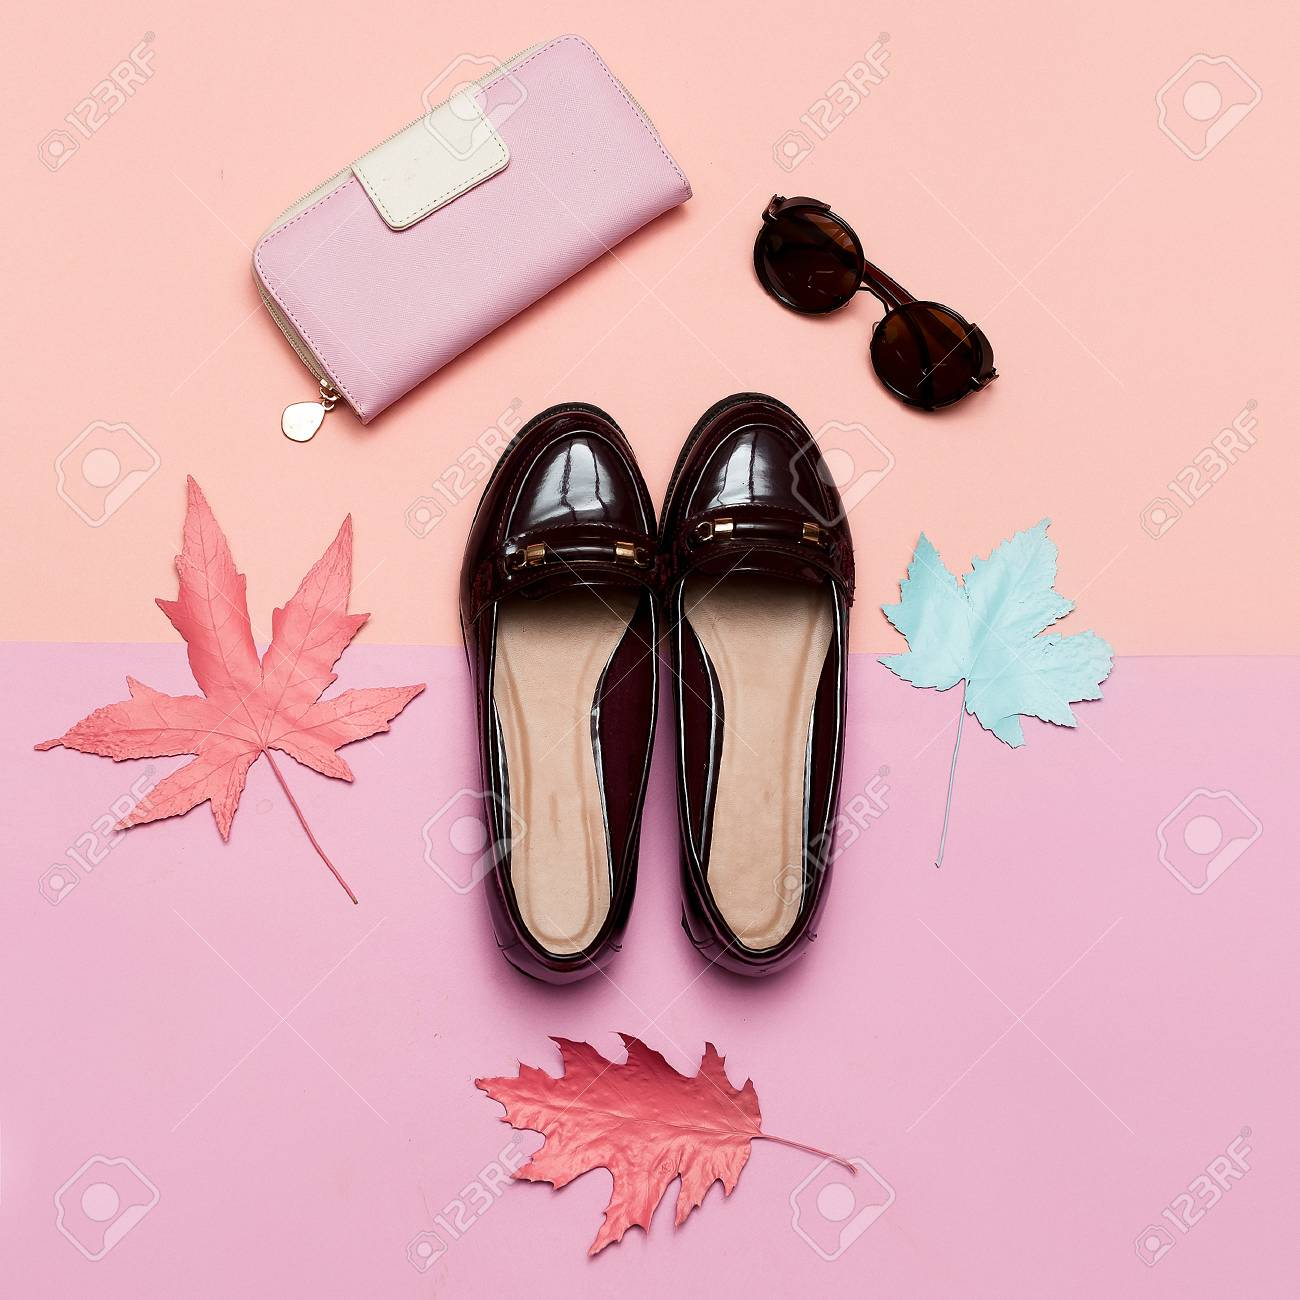 Fashionable Vintage Shoes for Lady and Accessories Clutch and Glasses Concept Minimal Design Art - 77224471